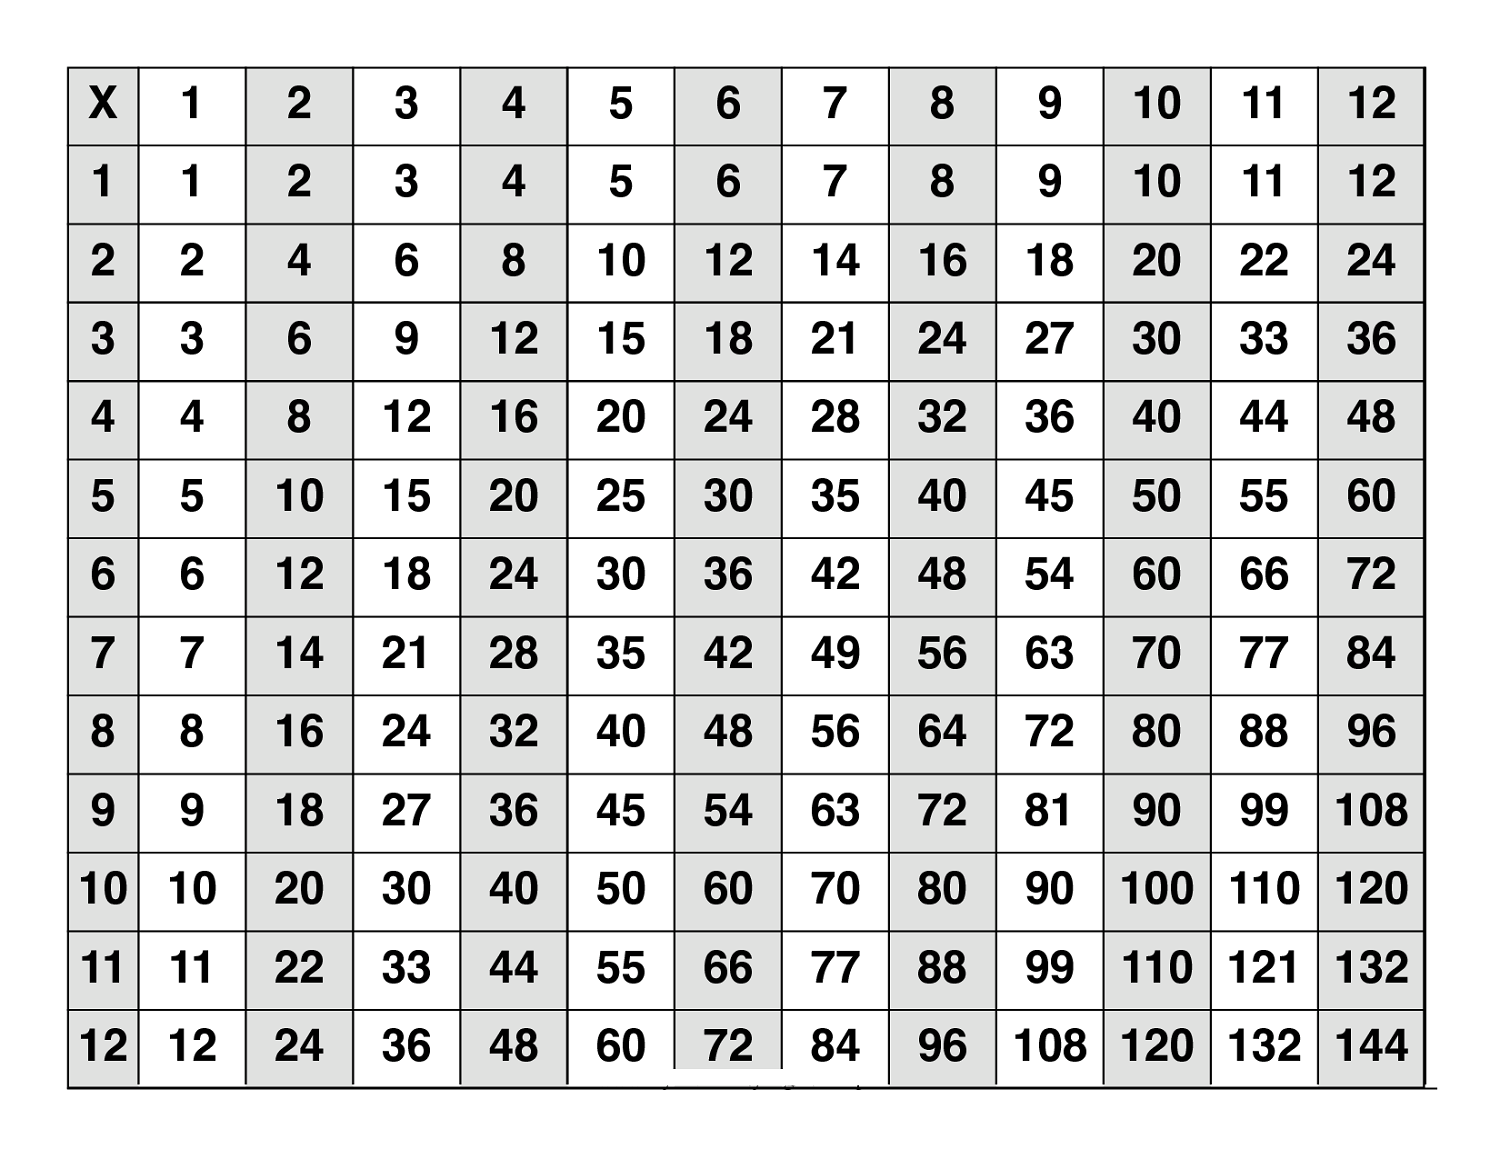 7 tables multiplication gallery periodic table images buy times tables multiplication signboard worksheet solving 7 tables multiplication image collections periodic table images ff48ec5d5e0ec2c092e76299bf773630 gamestrikefo Image collections